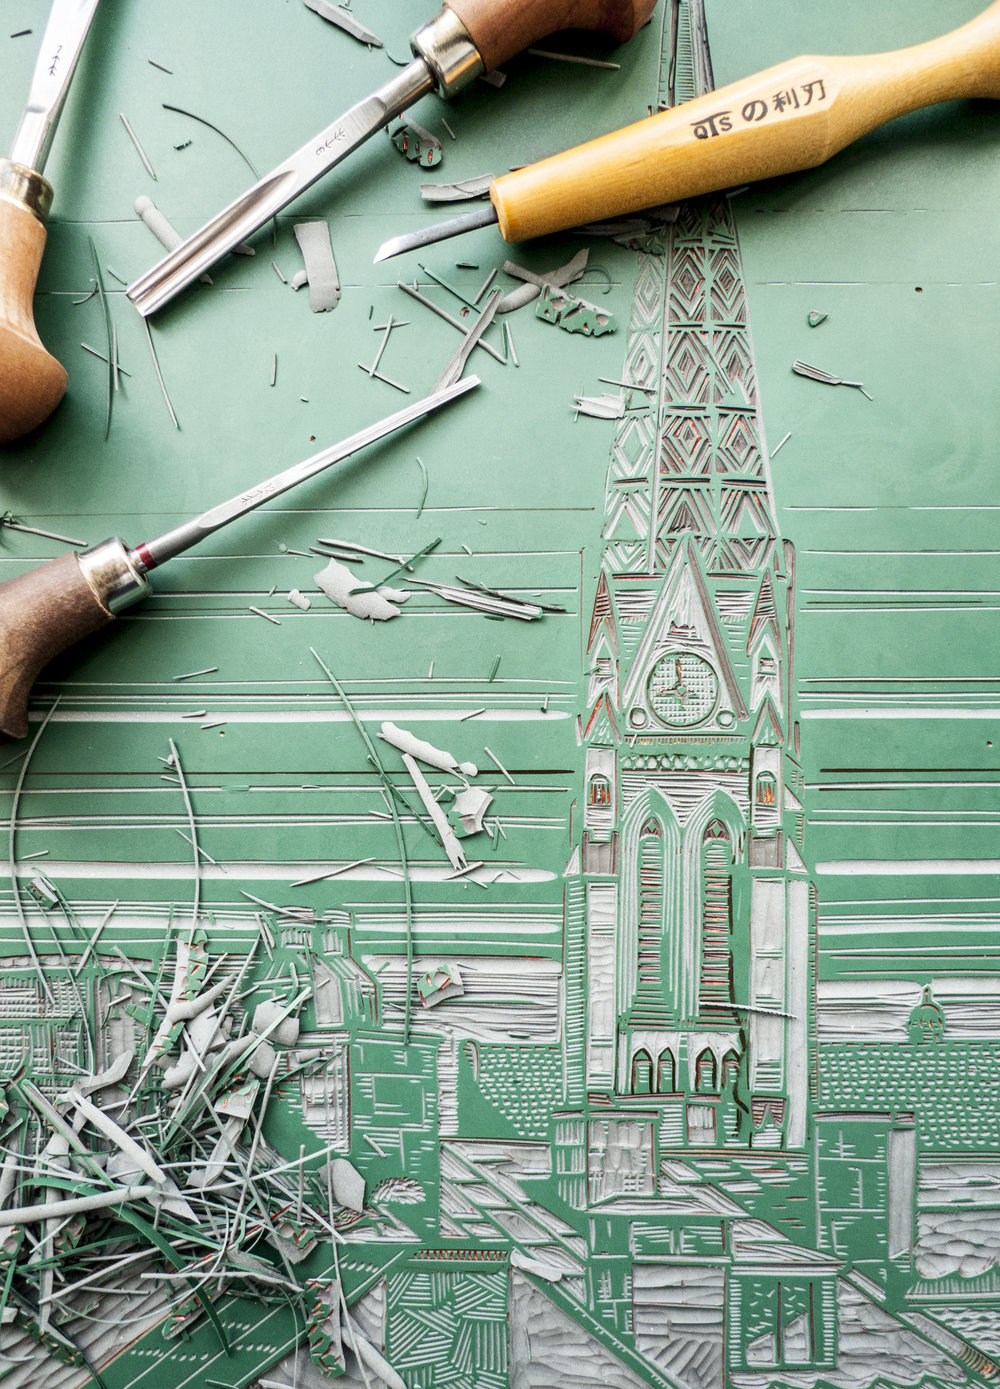 stockholm-st-johannes-kyrka-church-reduction-linocut-carving-b.jpg